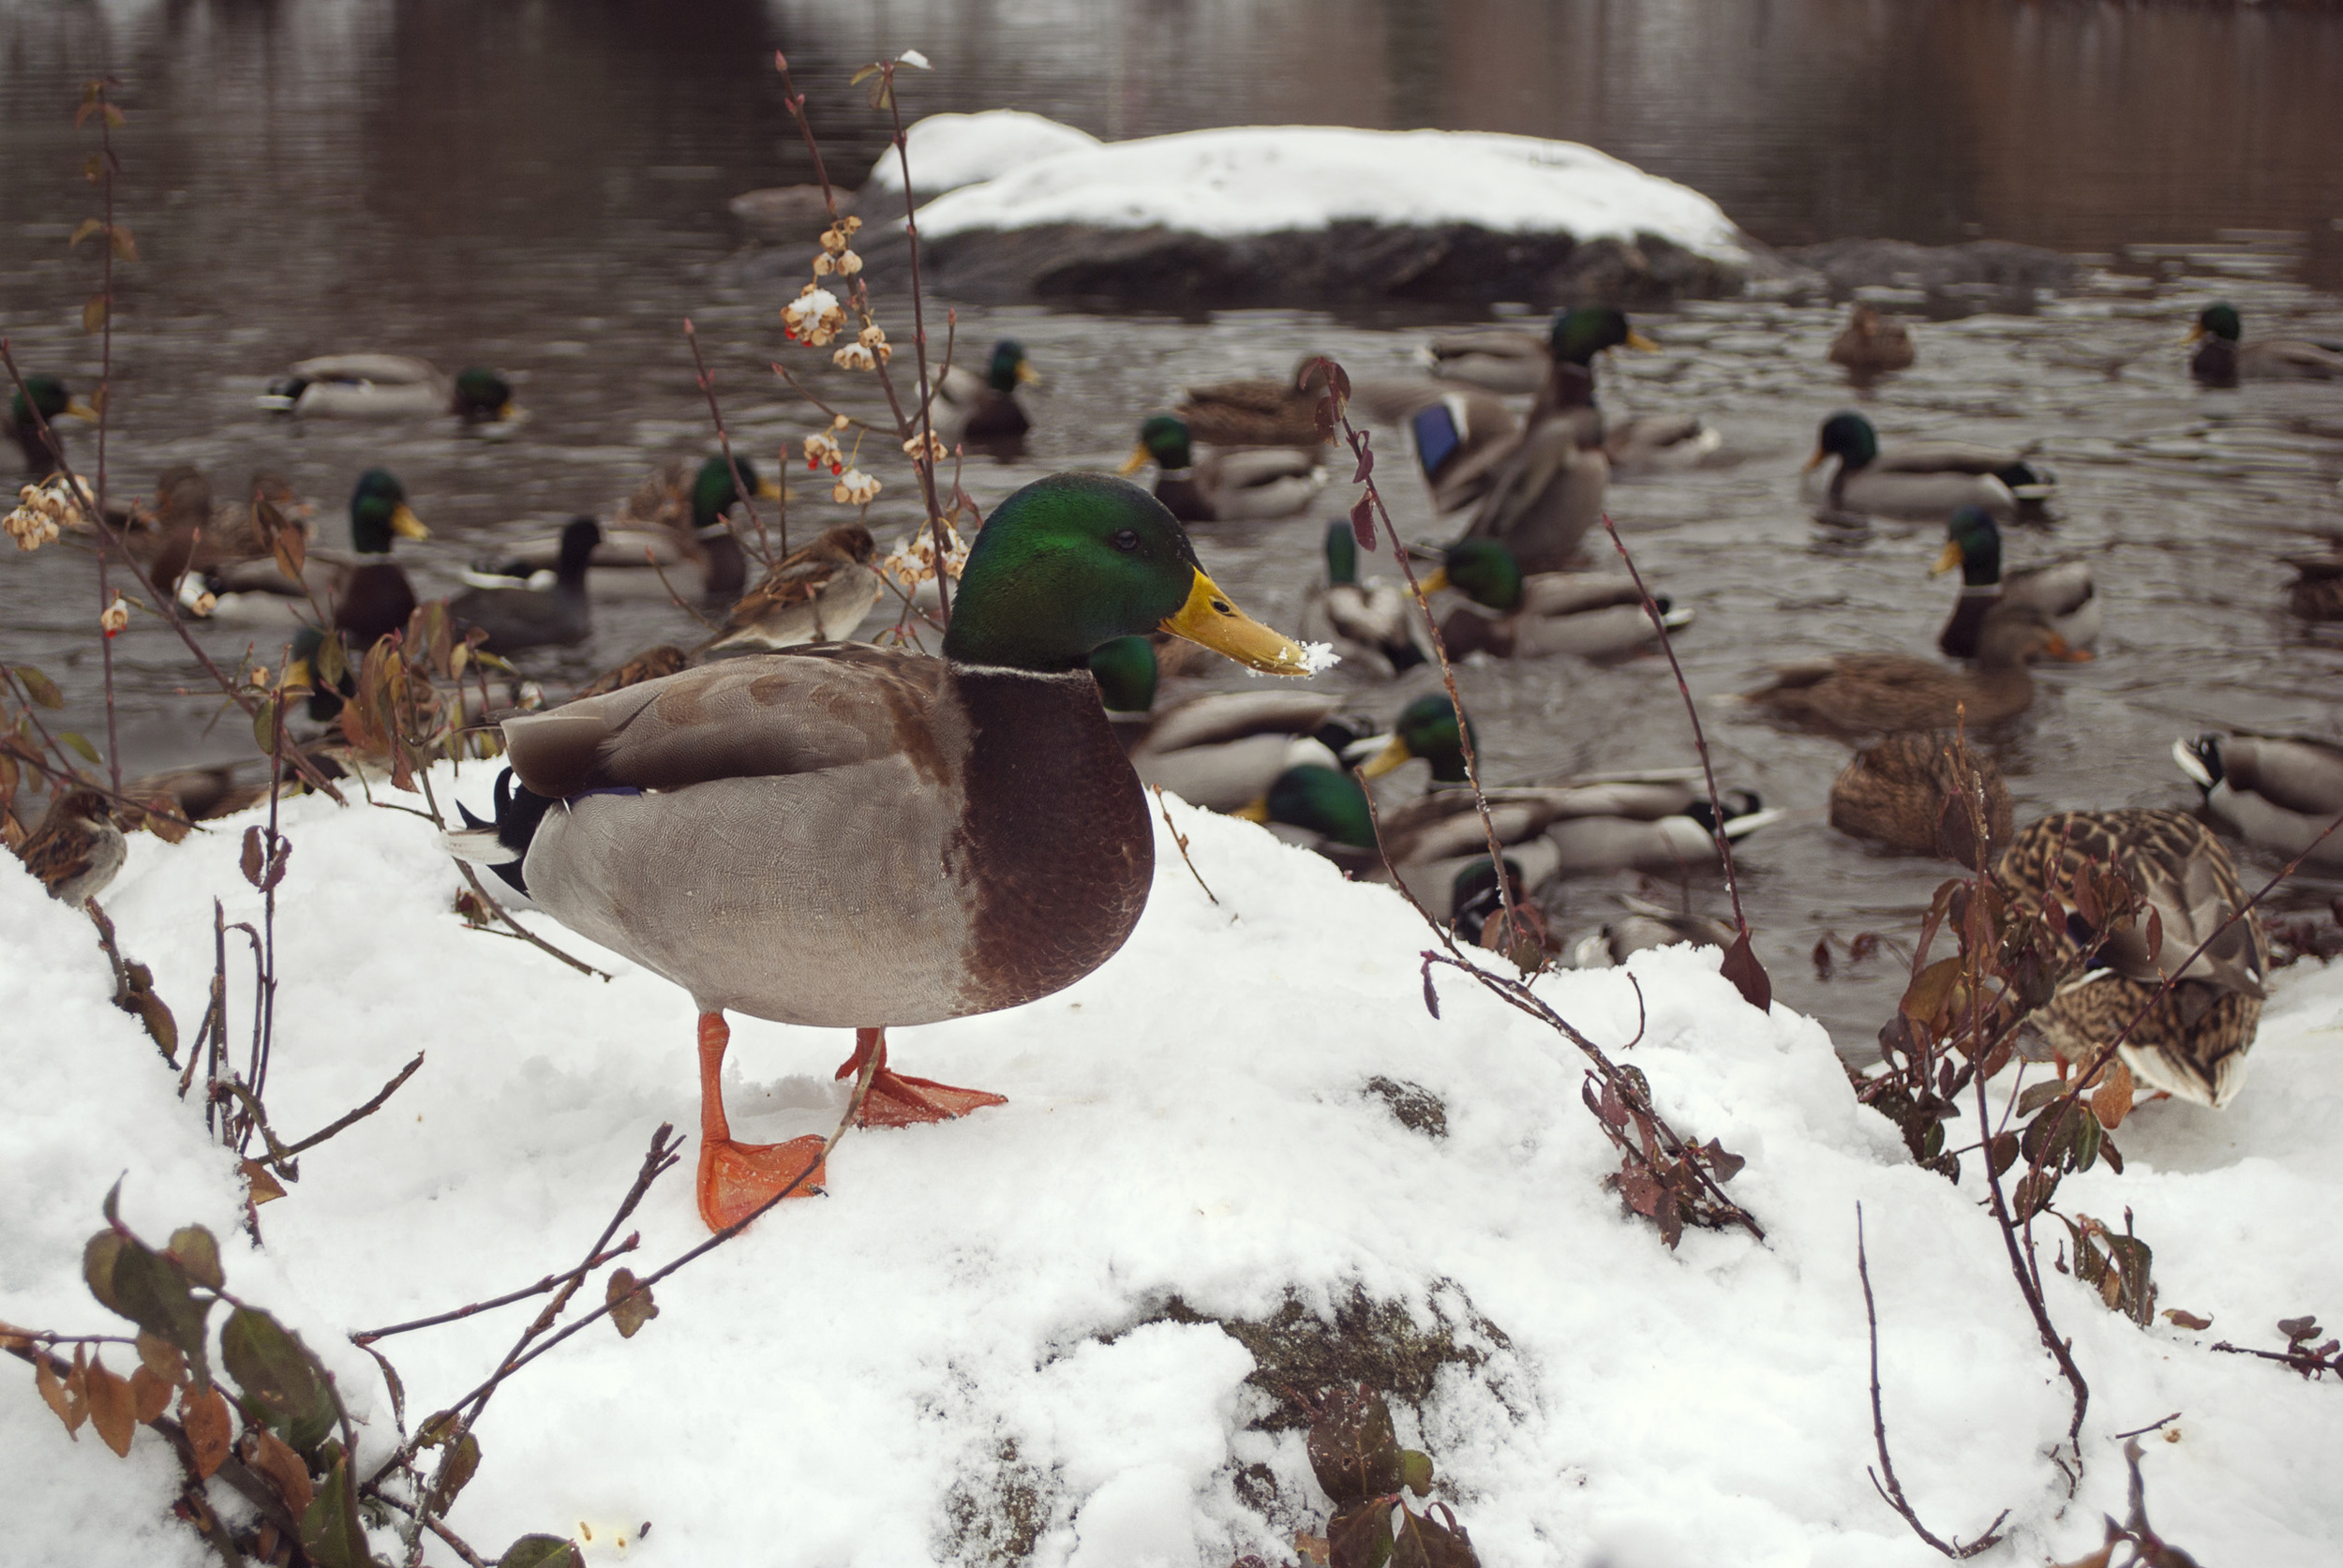 Central+Park+NYC+Snow+Duck+Winter